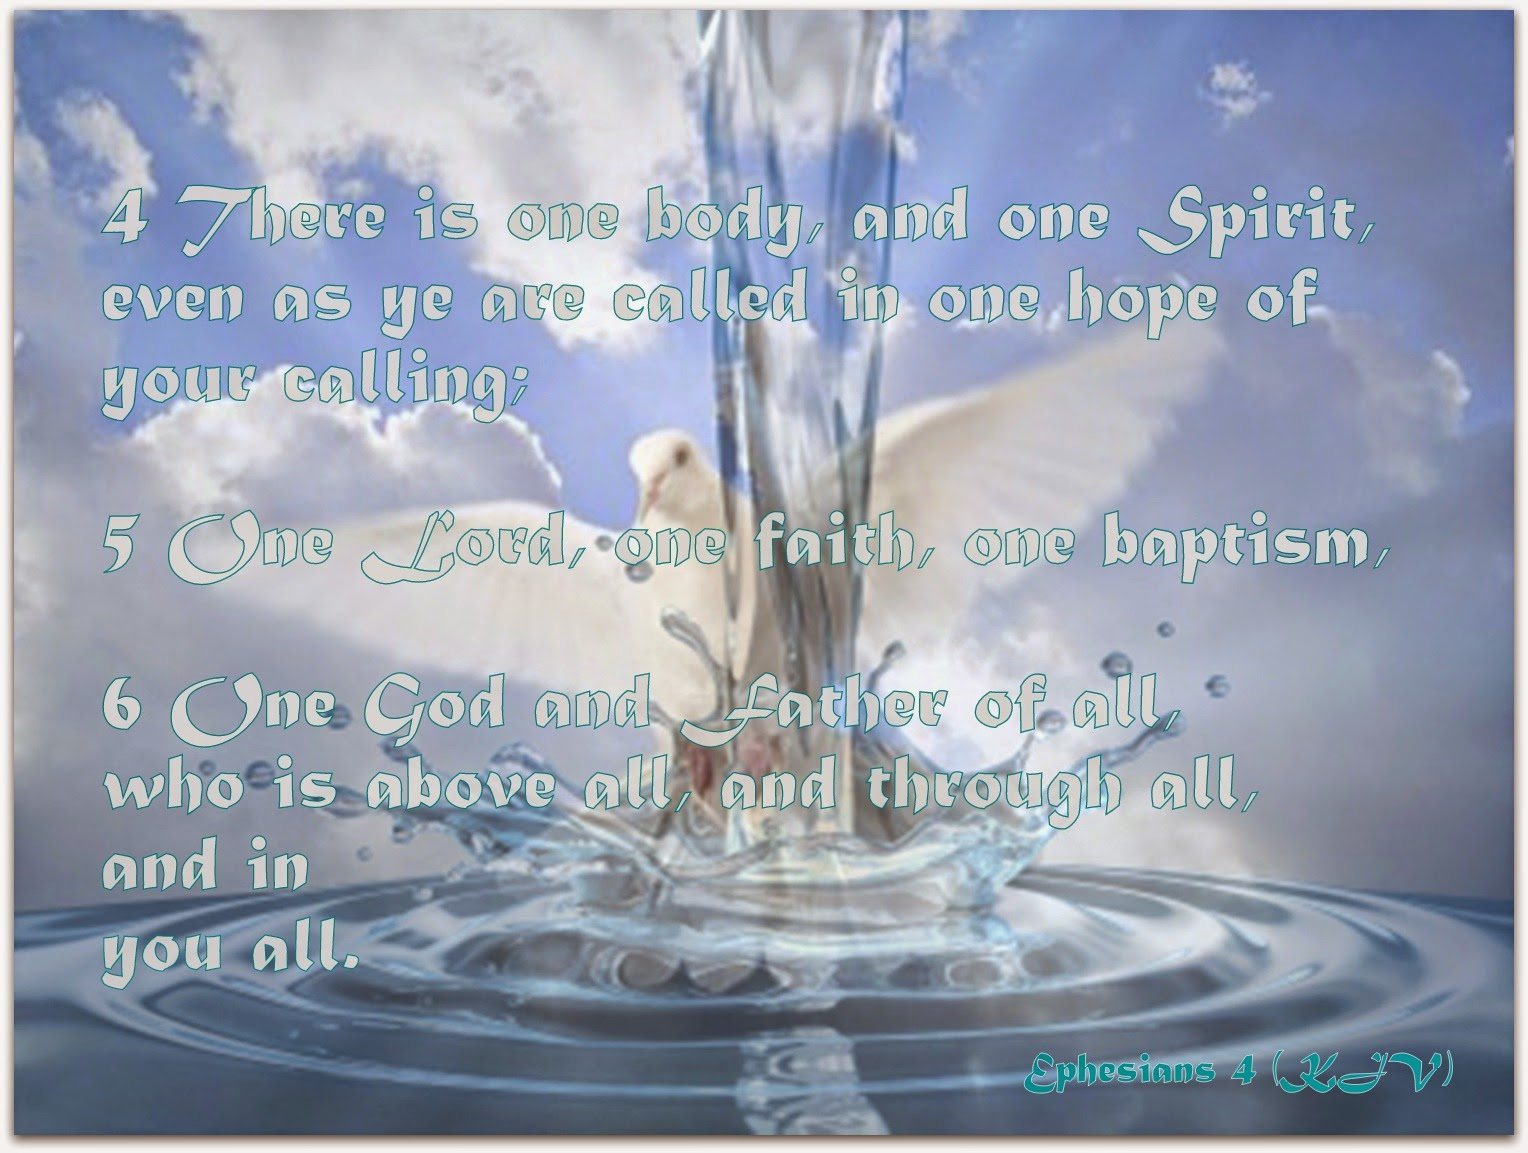 Red pill diaries baptism twice what does the bible say about this 4 there is one body and one spirit even as ye are called in one hope of your calling 5 one lord one faith one baptism 6 one god and father of all buycottarizona Gallery